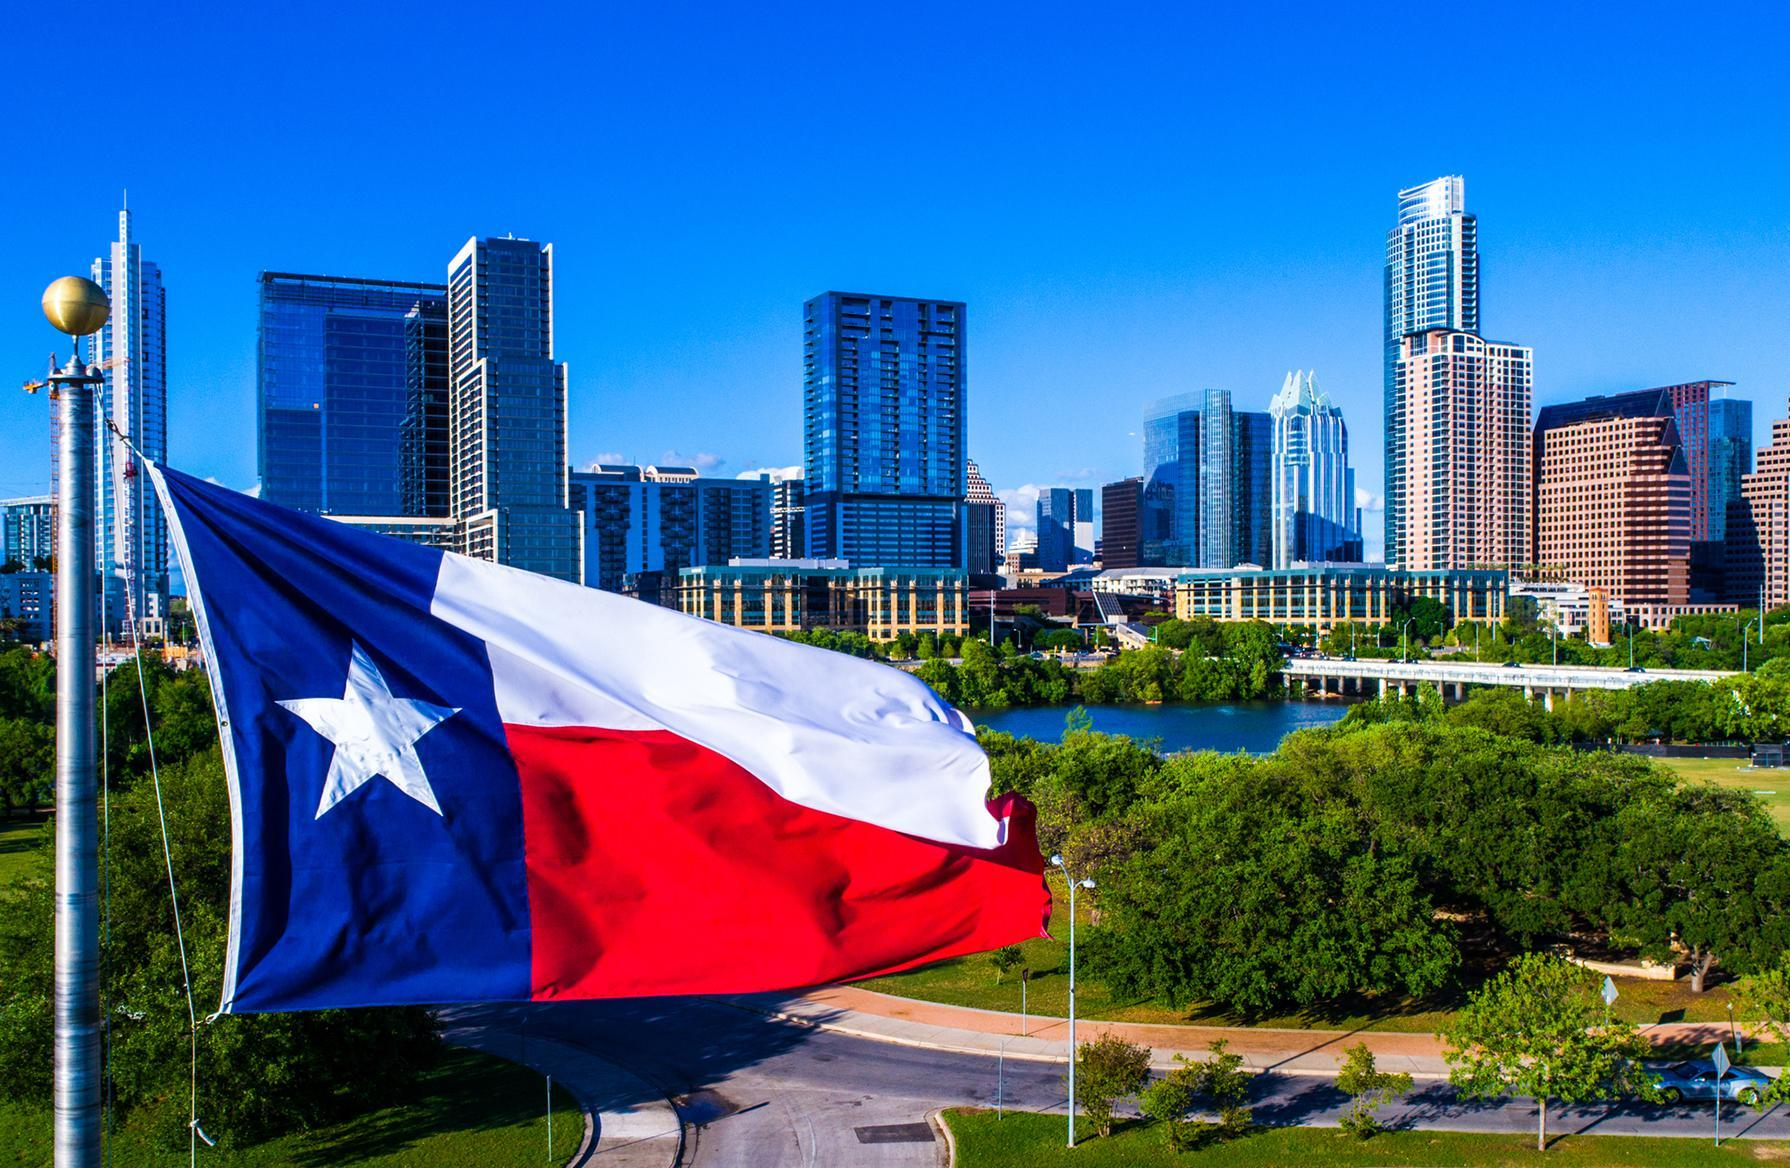 Texas and NL reconnects in Life Sciences and Health